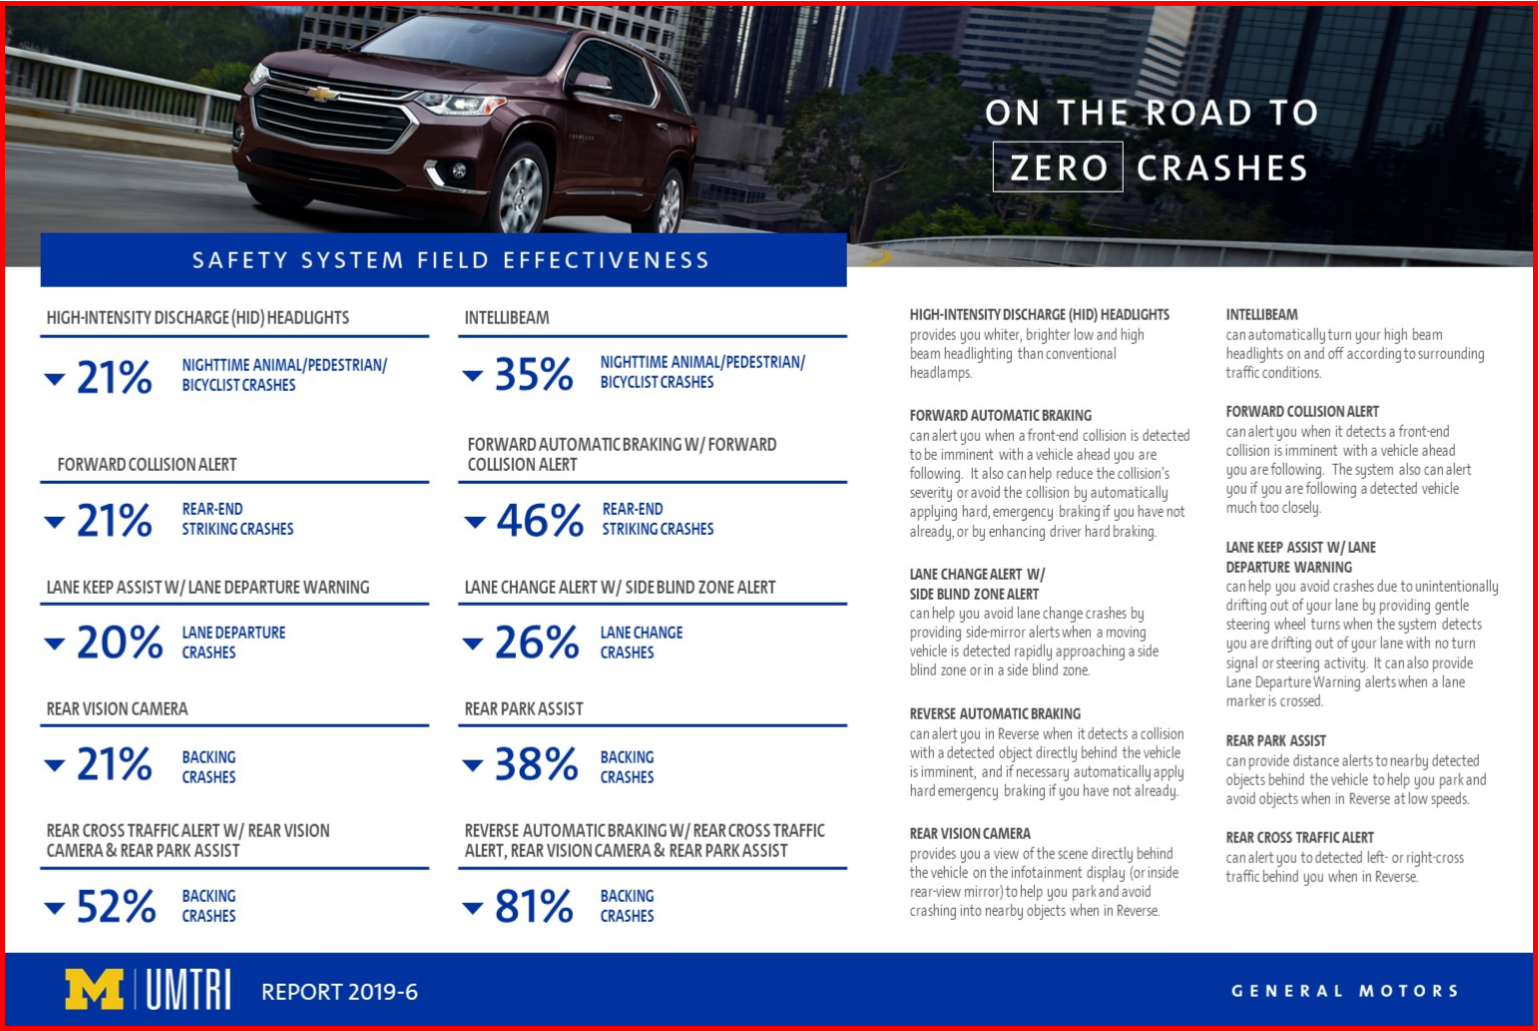 AutoInformed.com on GM Automated Safety Systems UMTRI Effectiveness Study Sept. 2019